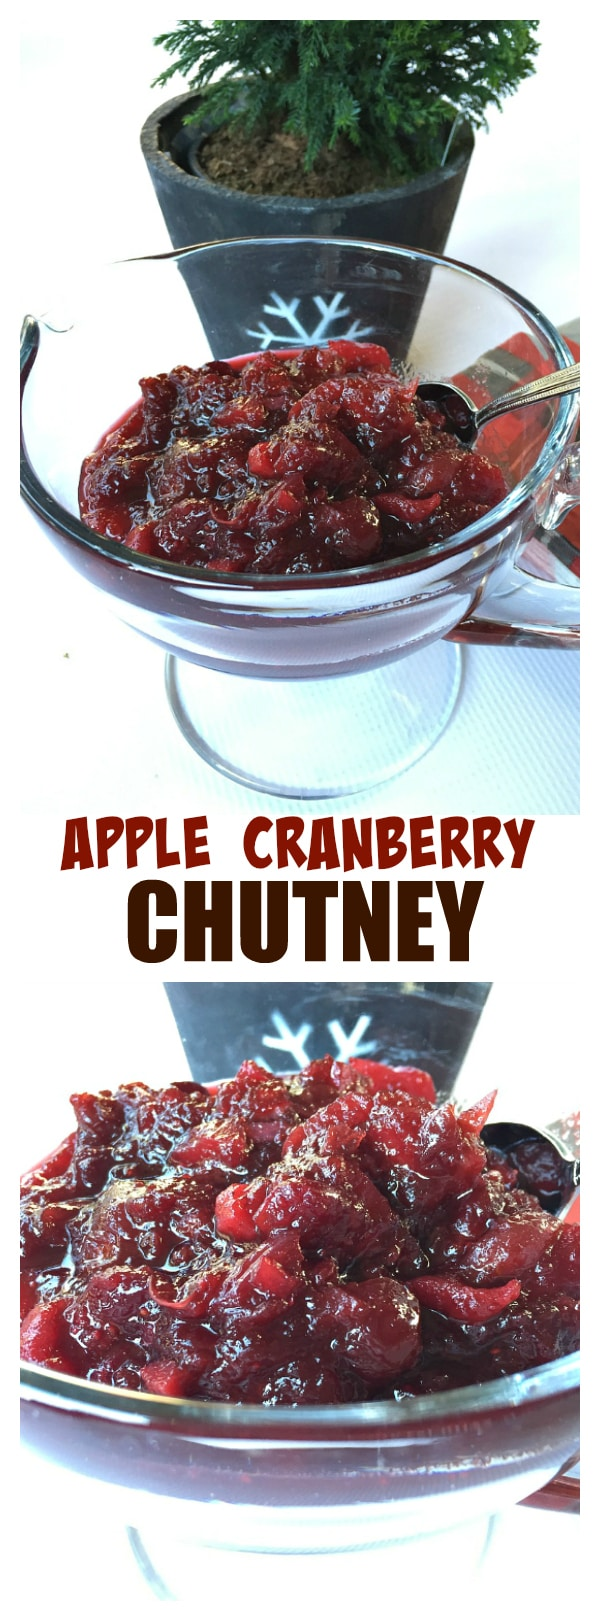 Apple Cranberry Chutney is delicious served with turkey, ham, Cornish game hens, chicken, … or on sandwiches, in wraps, and even baked in a delicious brie!